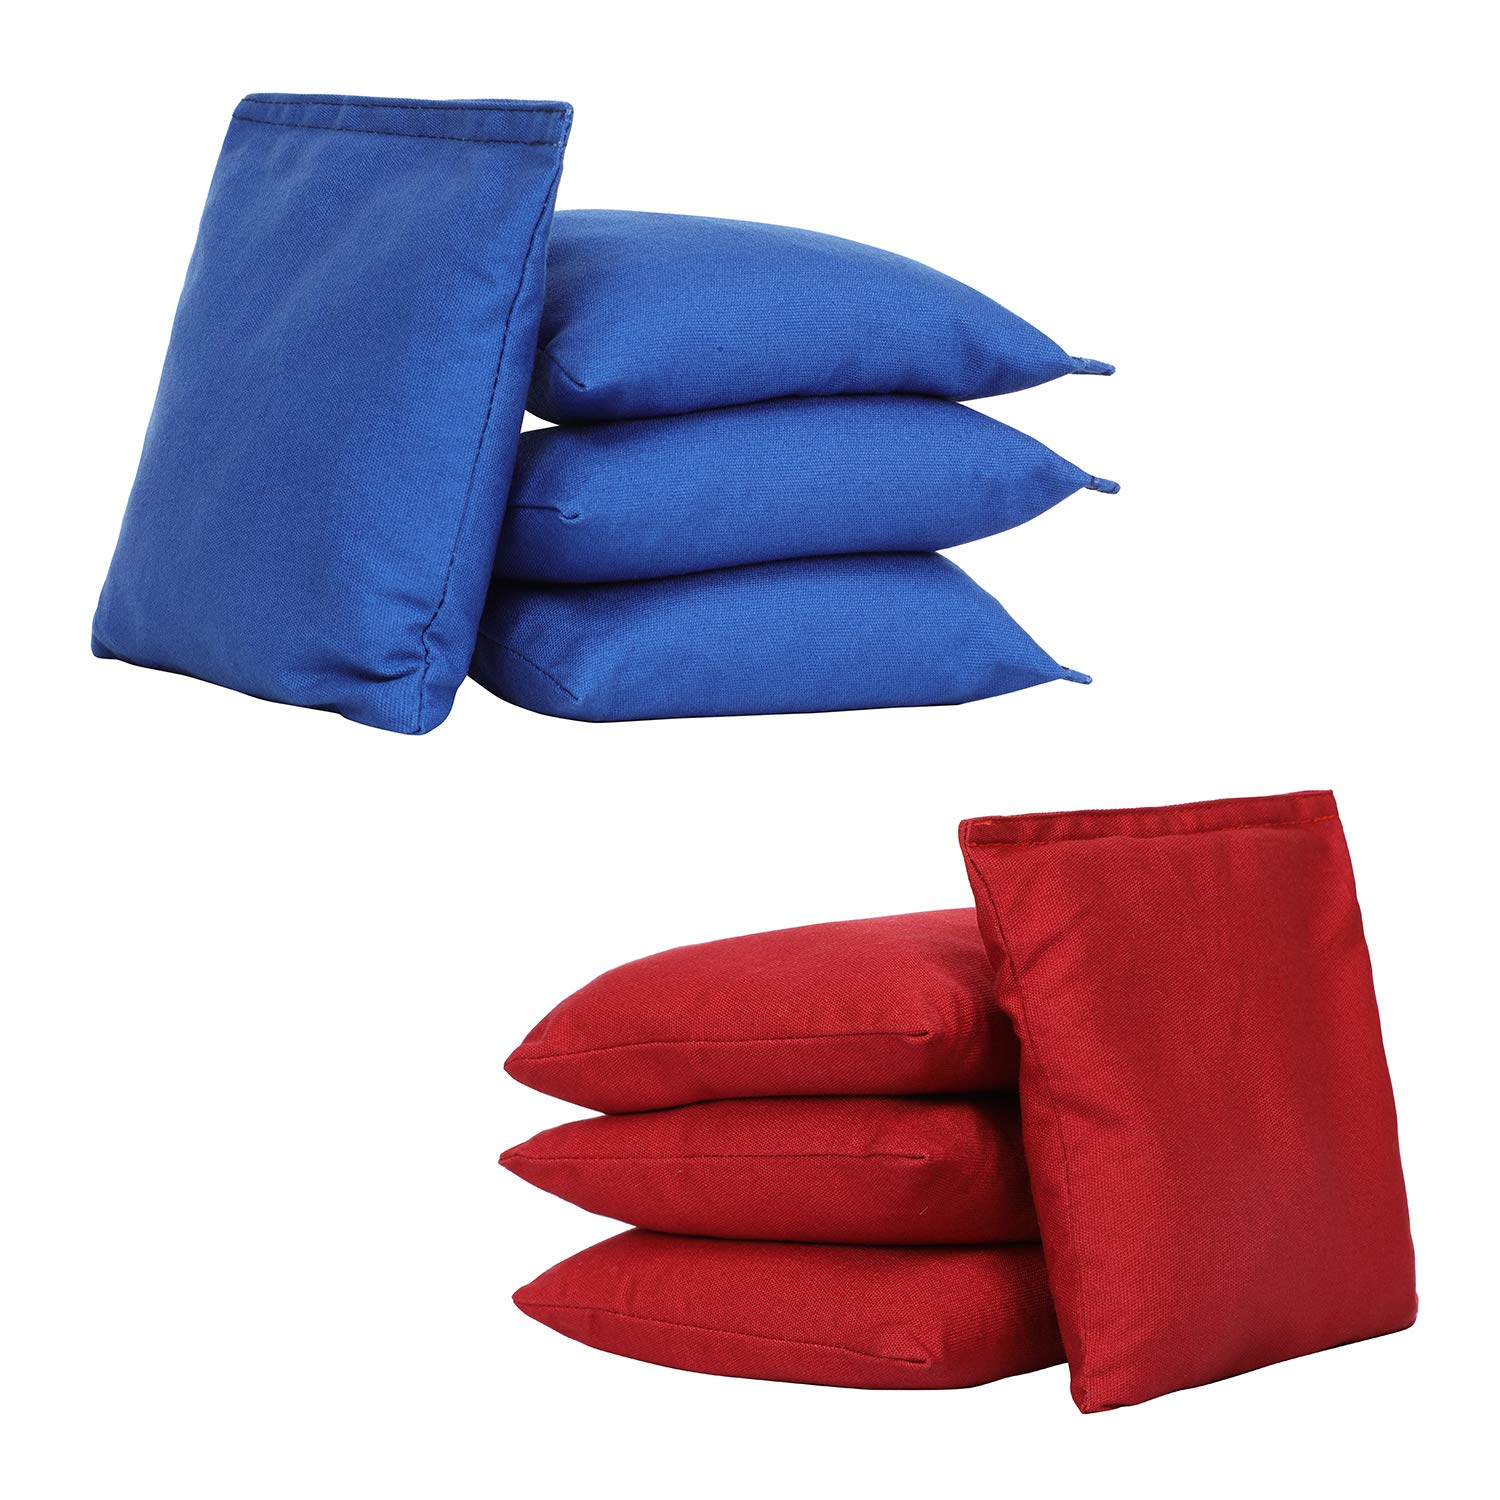 UKASE Regulation Cornhole Bag Bean Bags Pack of 8 for Tossing Core Hole Games Red and Navy Blue